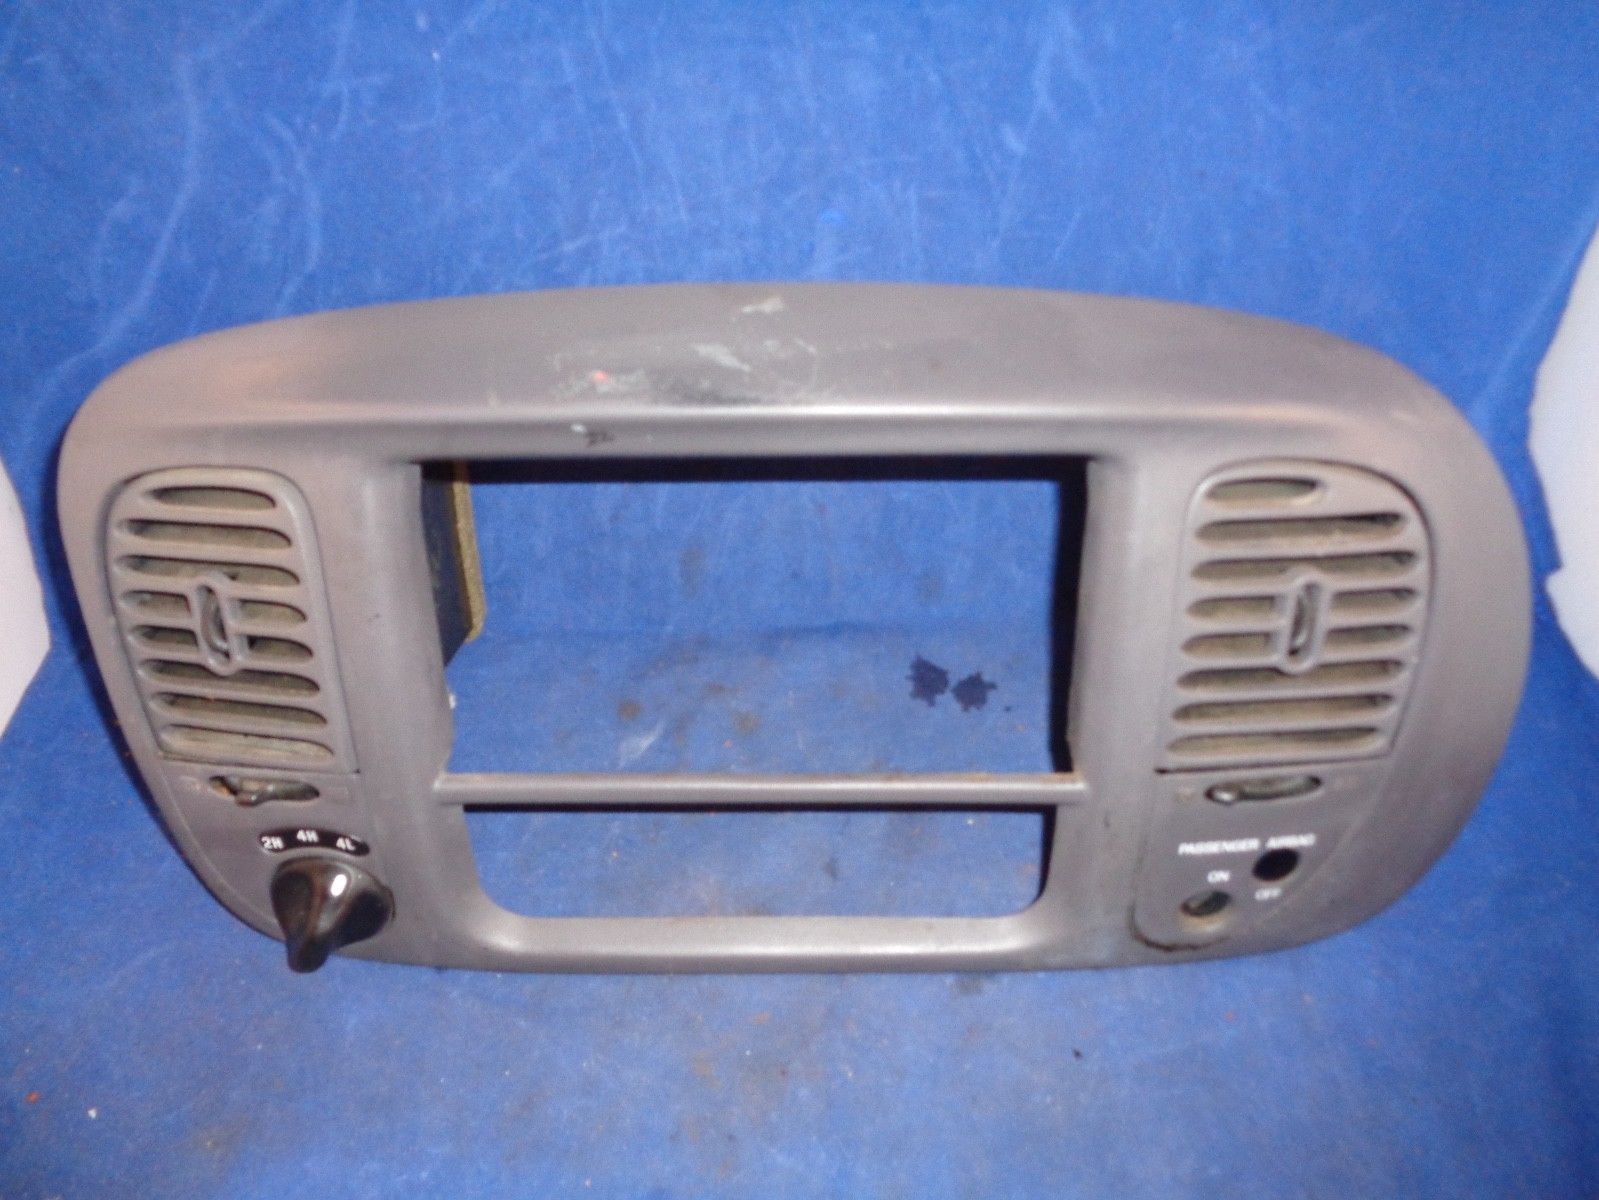 Ford F150 F250 F350 Expedition Gray Trim Center Vents 4x4 Switch Knob 2H 4H 4L Does not apply